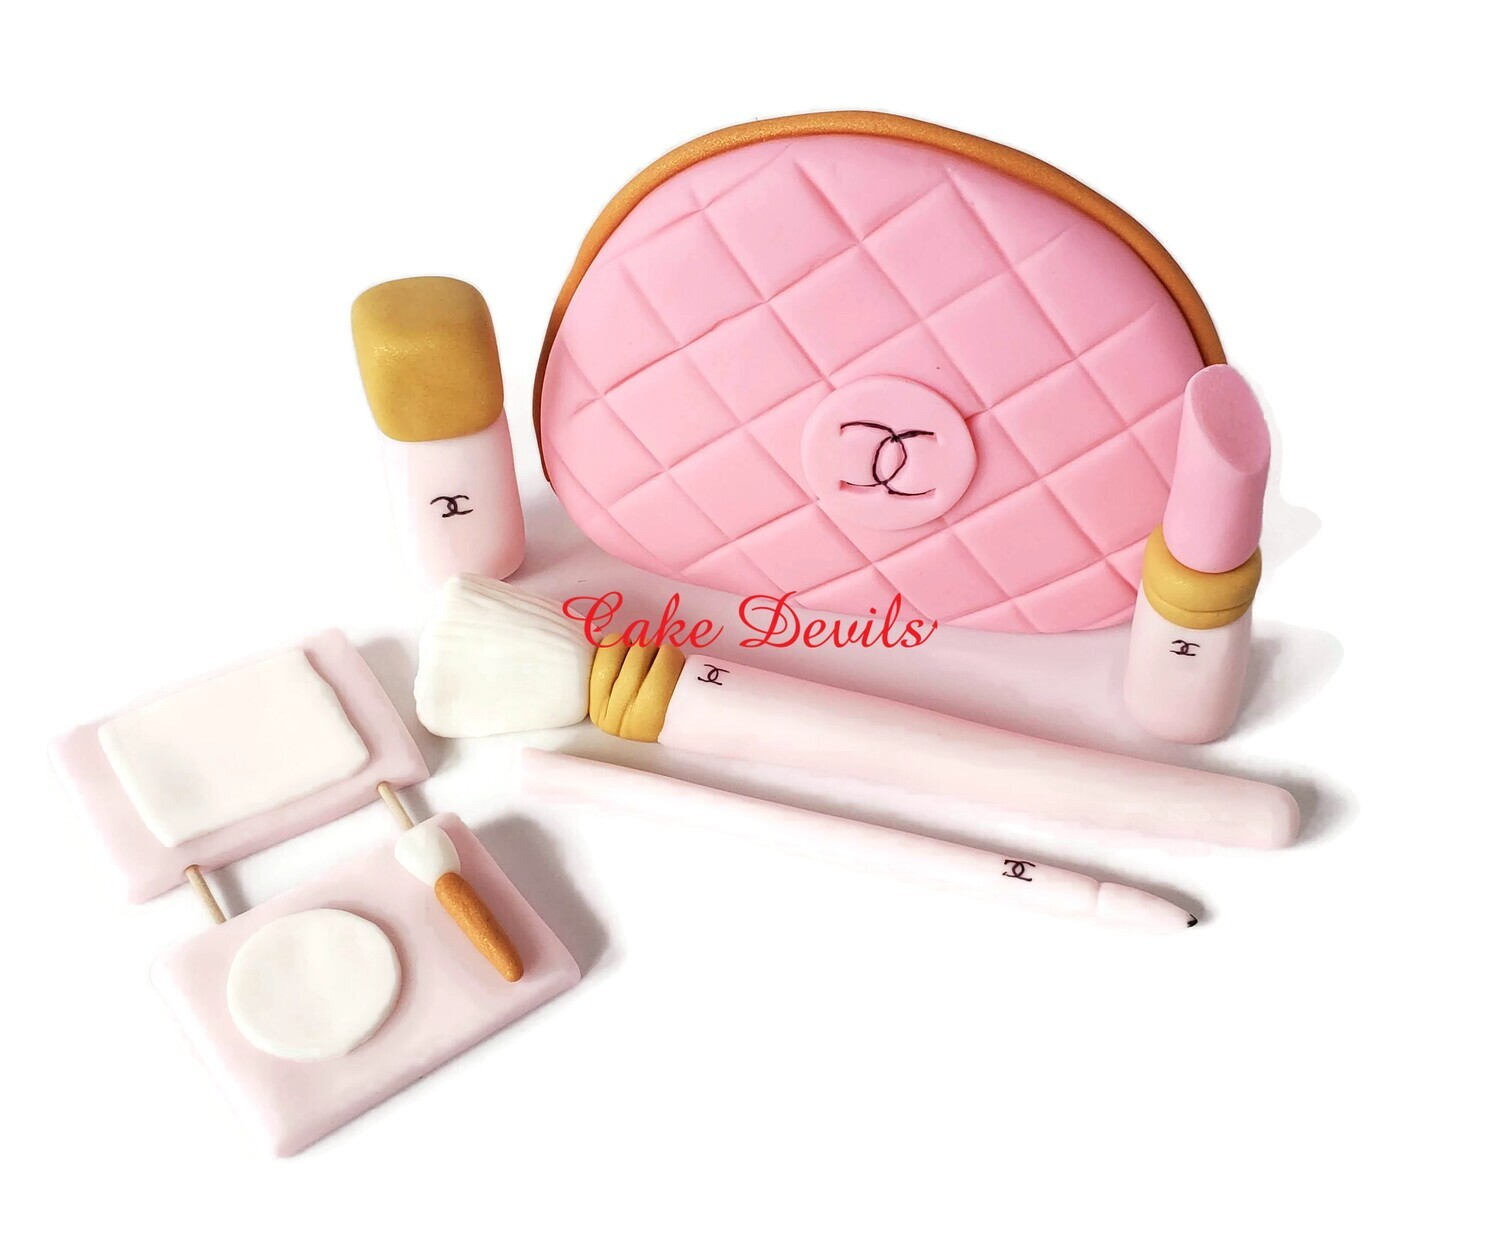 Fondant Makeup Cake Toppers with Cosmetic Bag Cake Decorations, Make up